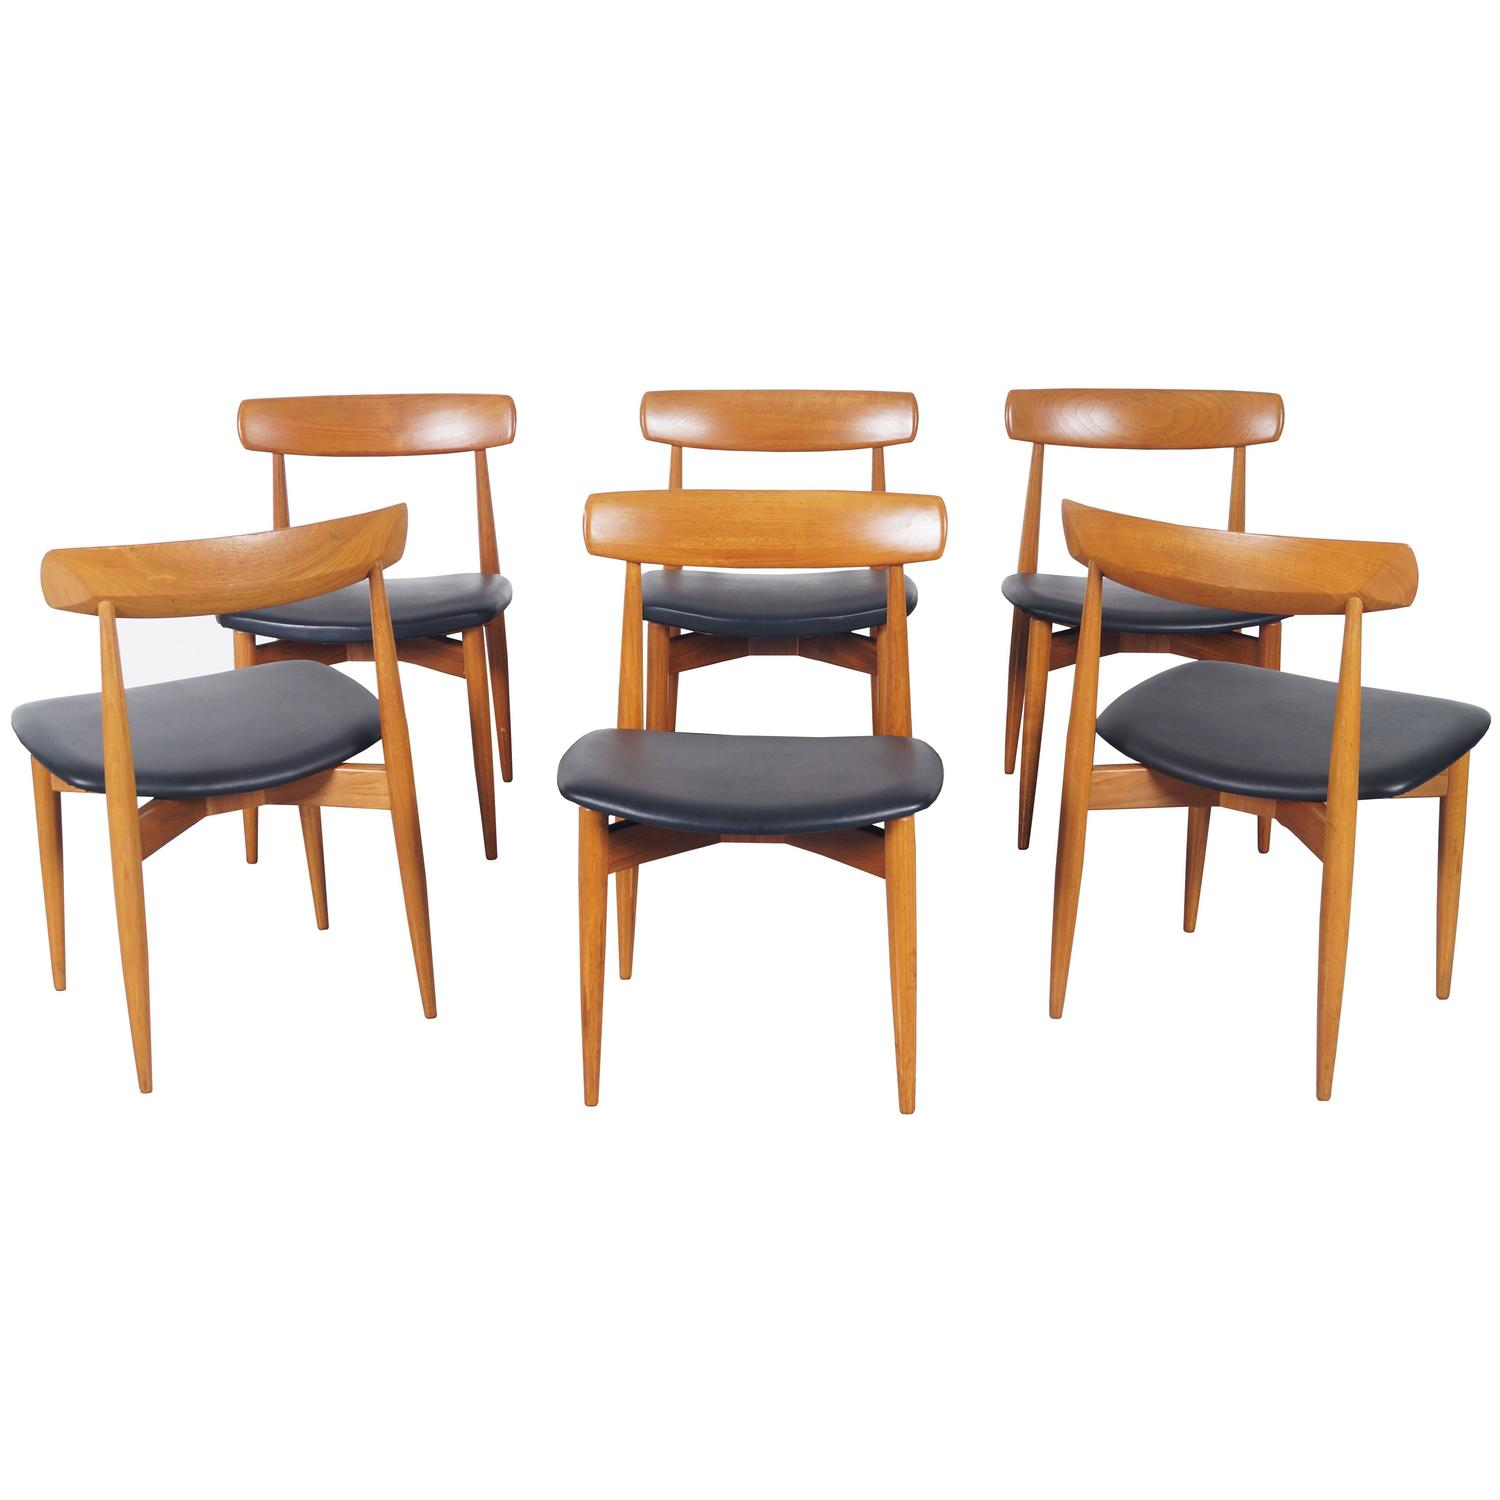 Danish teak dining chairs by h w klein for sale at stdibs